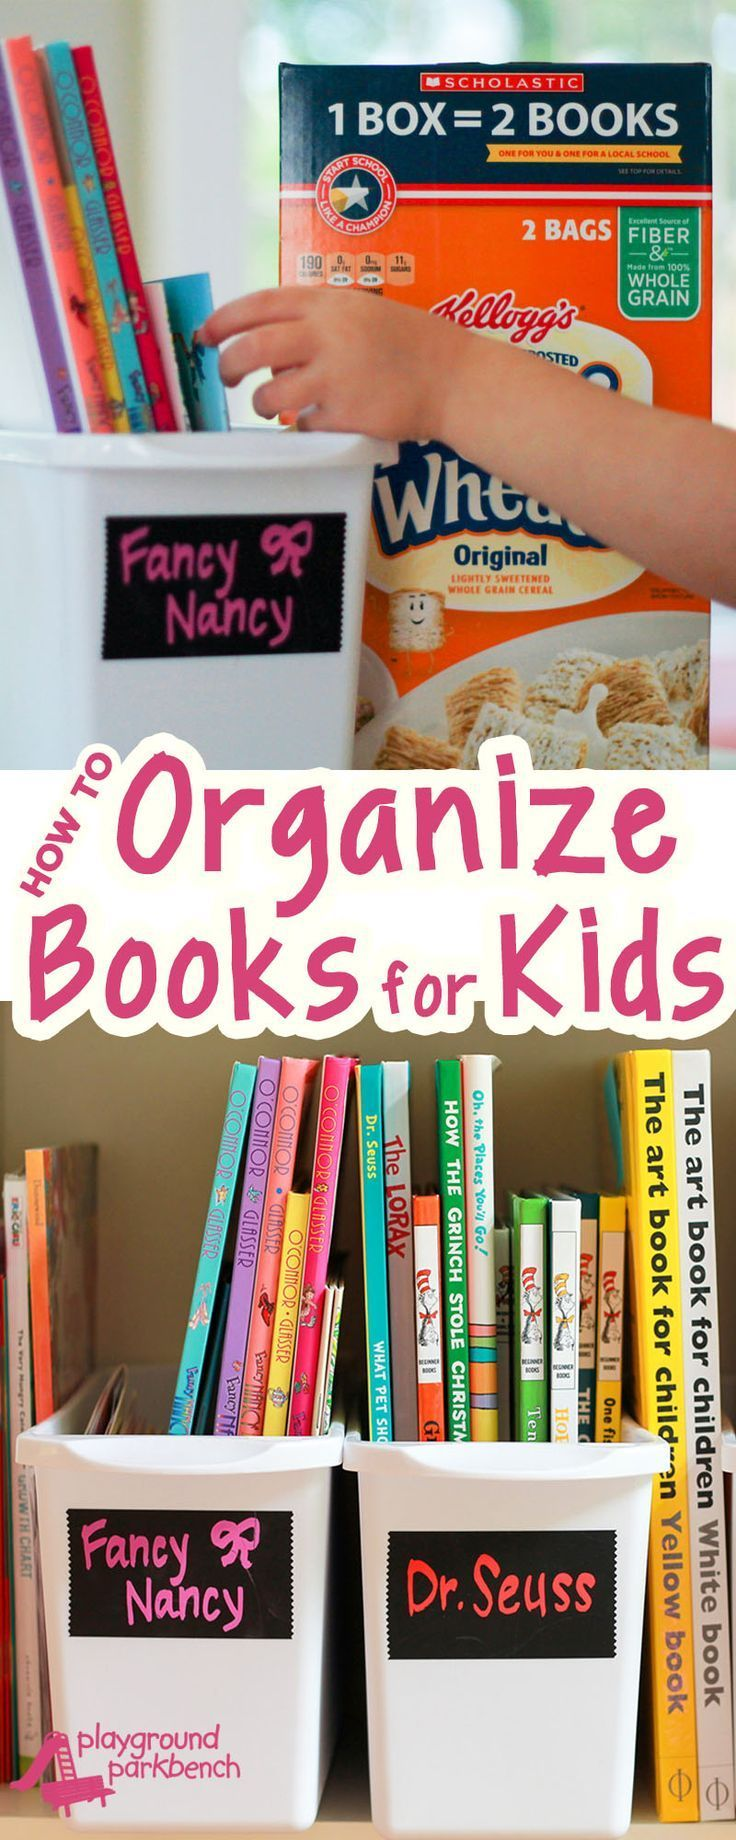 How To Organize Books For Kids Book Organization Organizing Kids Books Bookshelves Kids